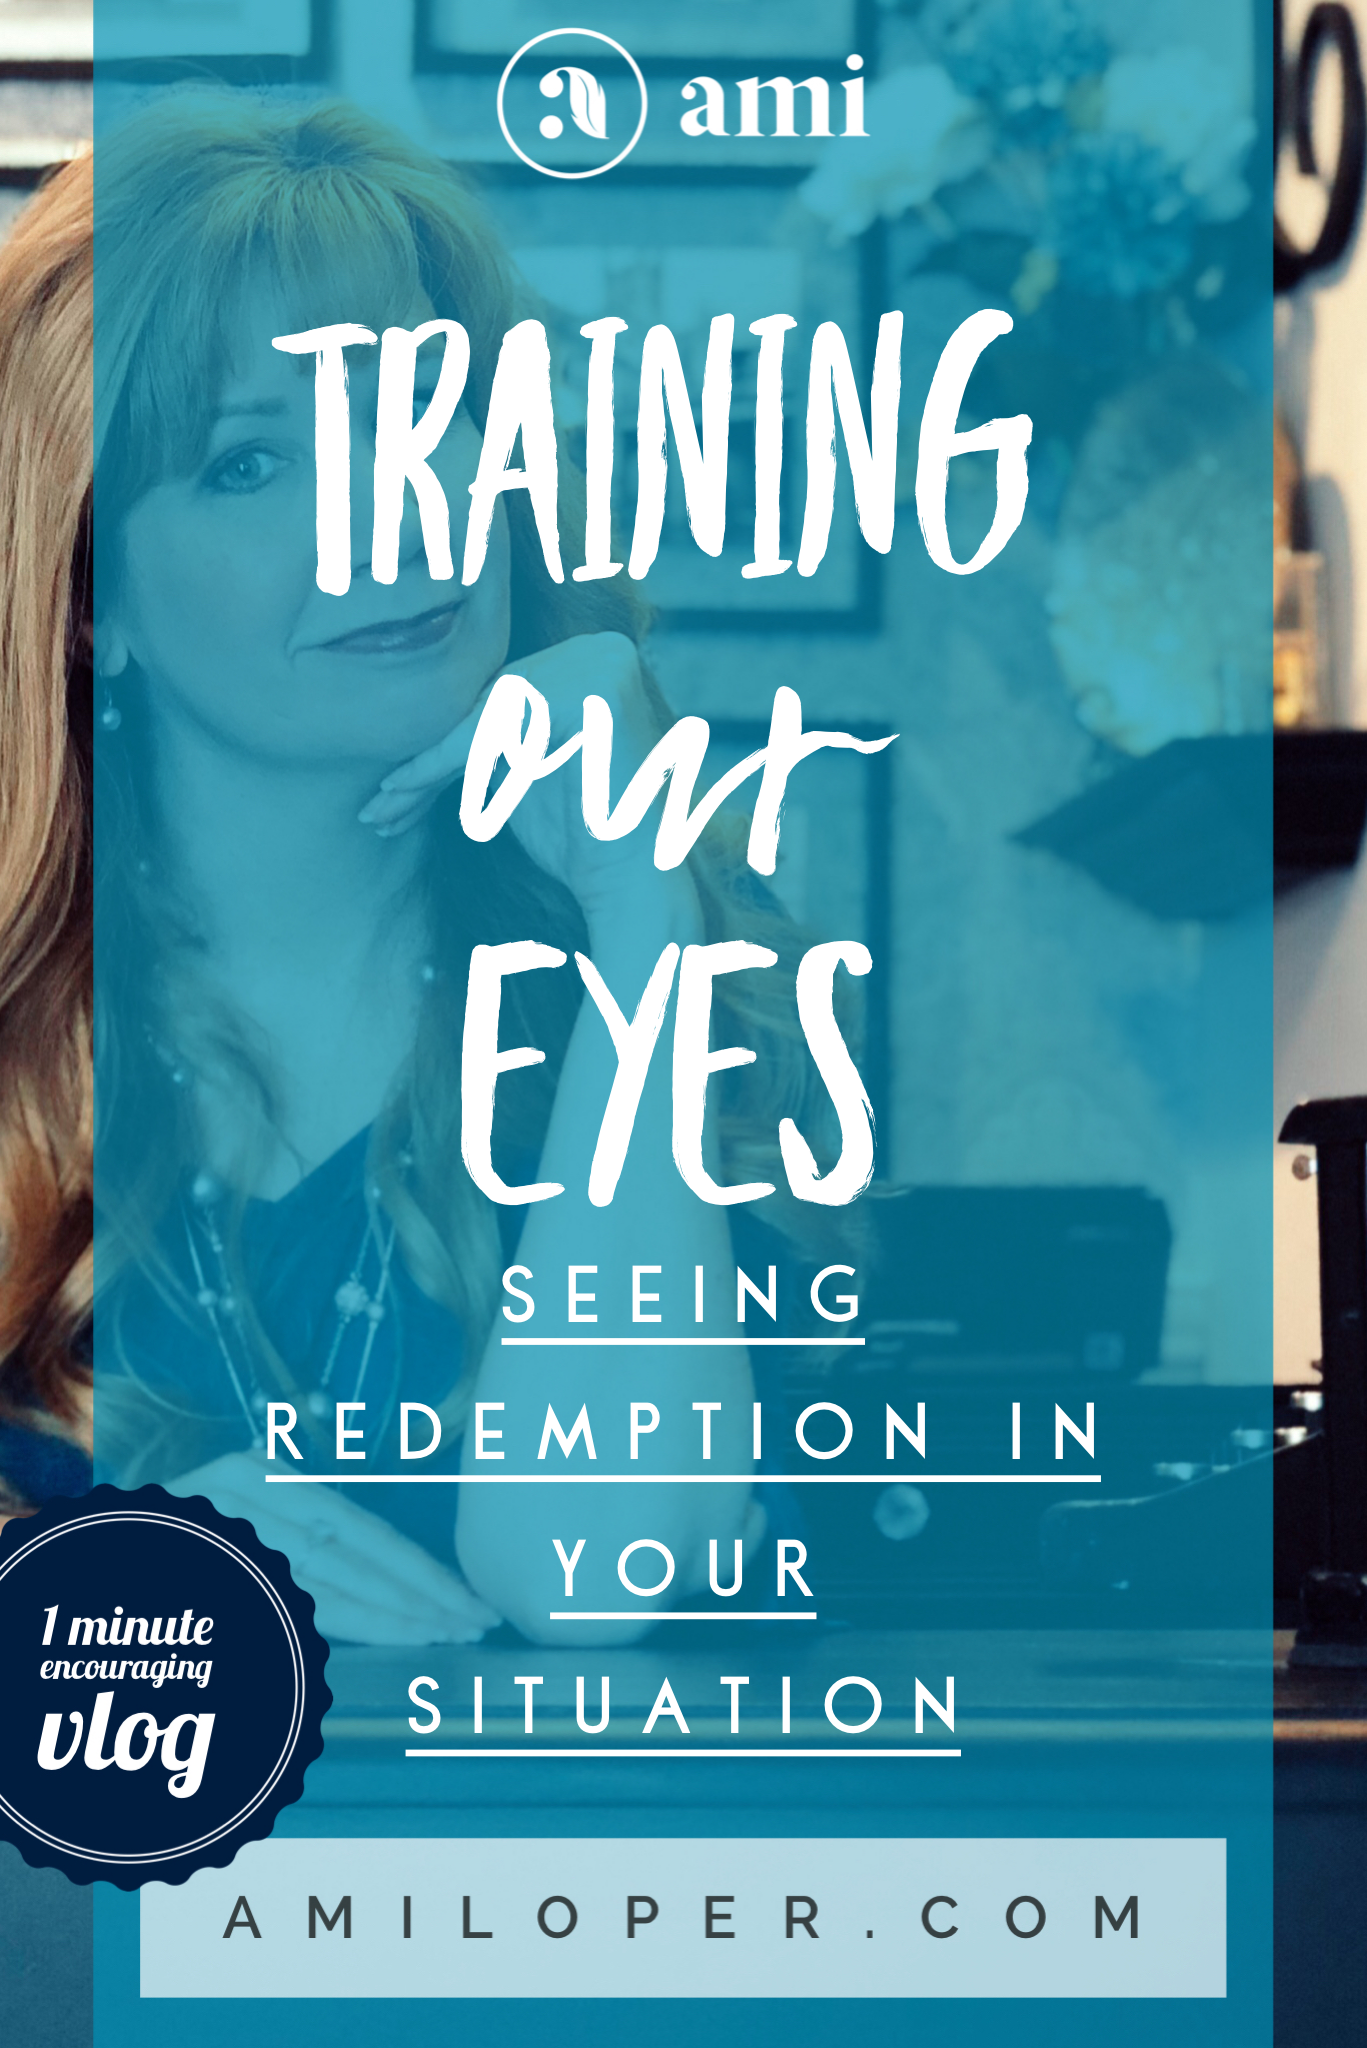 Want to be able to see God's redemptive hand in your situation? Here's a secret I've learned that helps me see Him more clearly at work in my trials. #Redemption #GodsPlan #ChristianVlog #Encouragement #inspiration